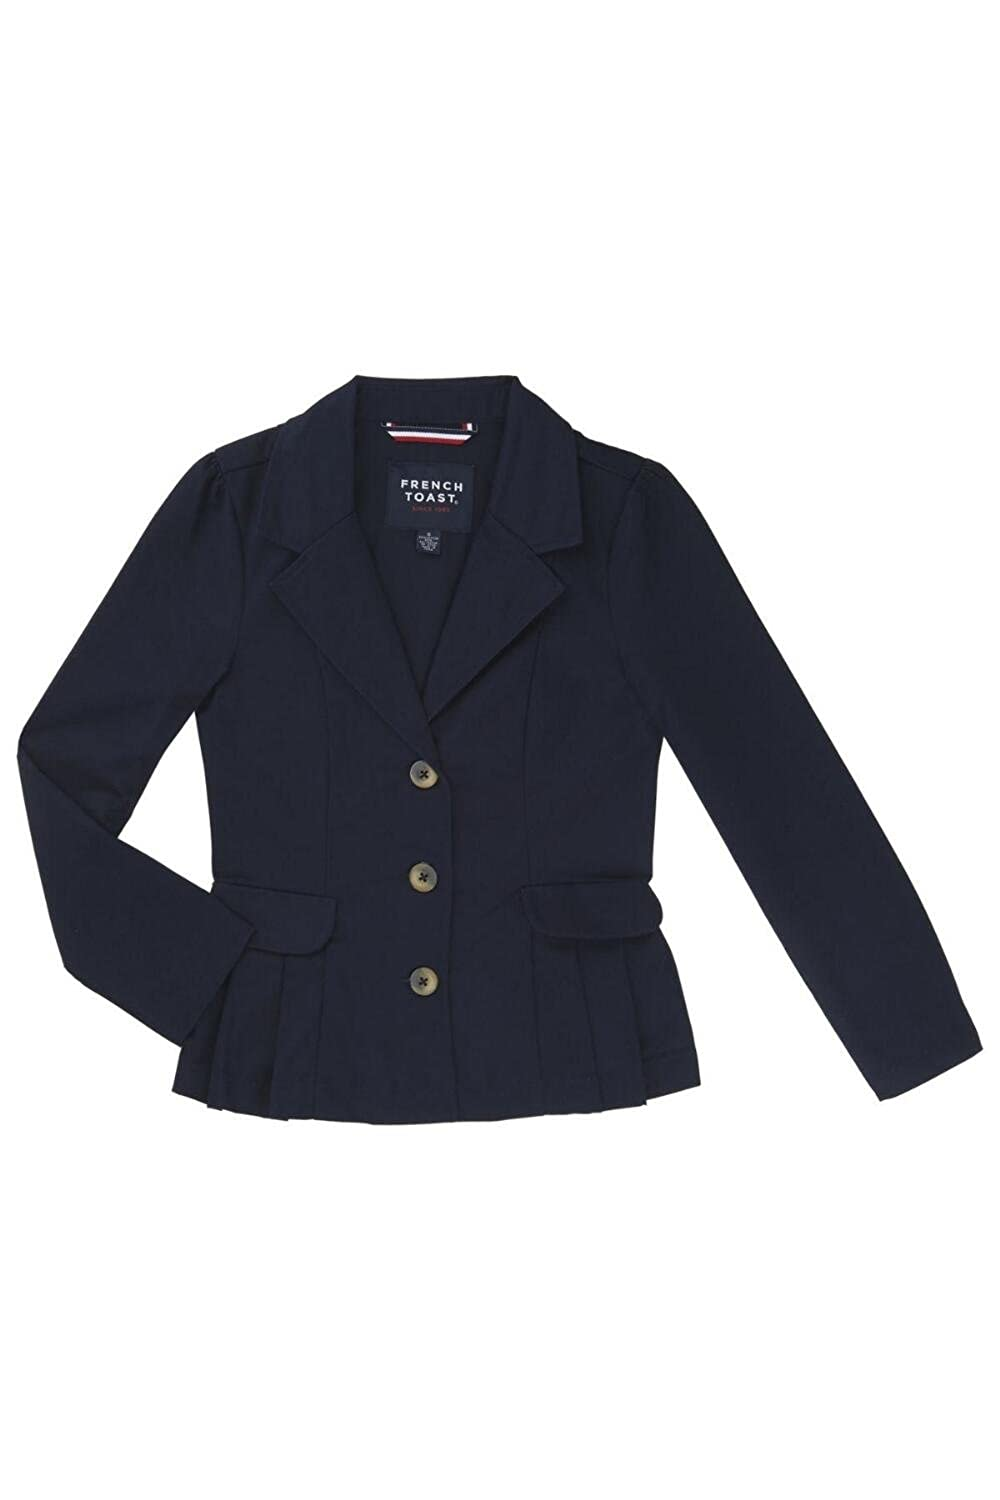 French Toast School Uniform Girls Twill Blazer